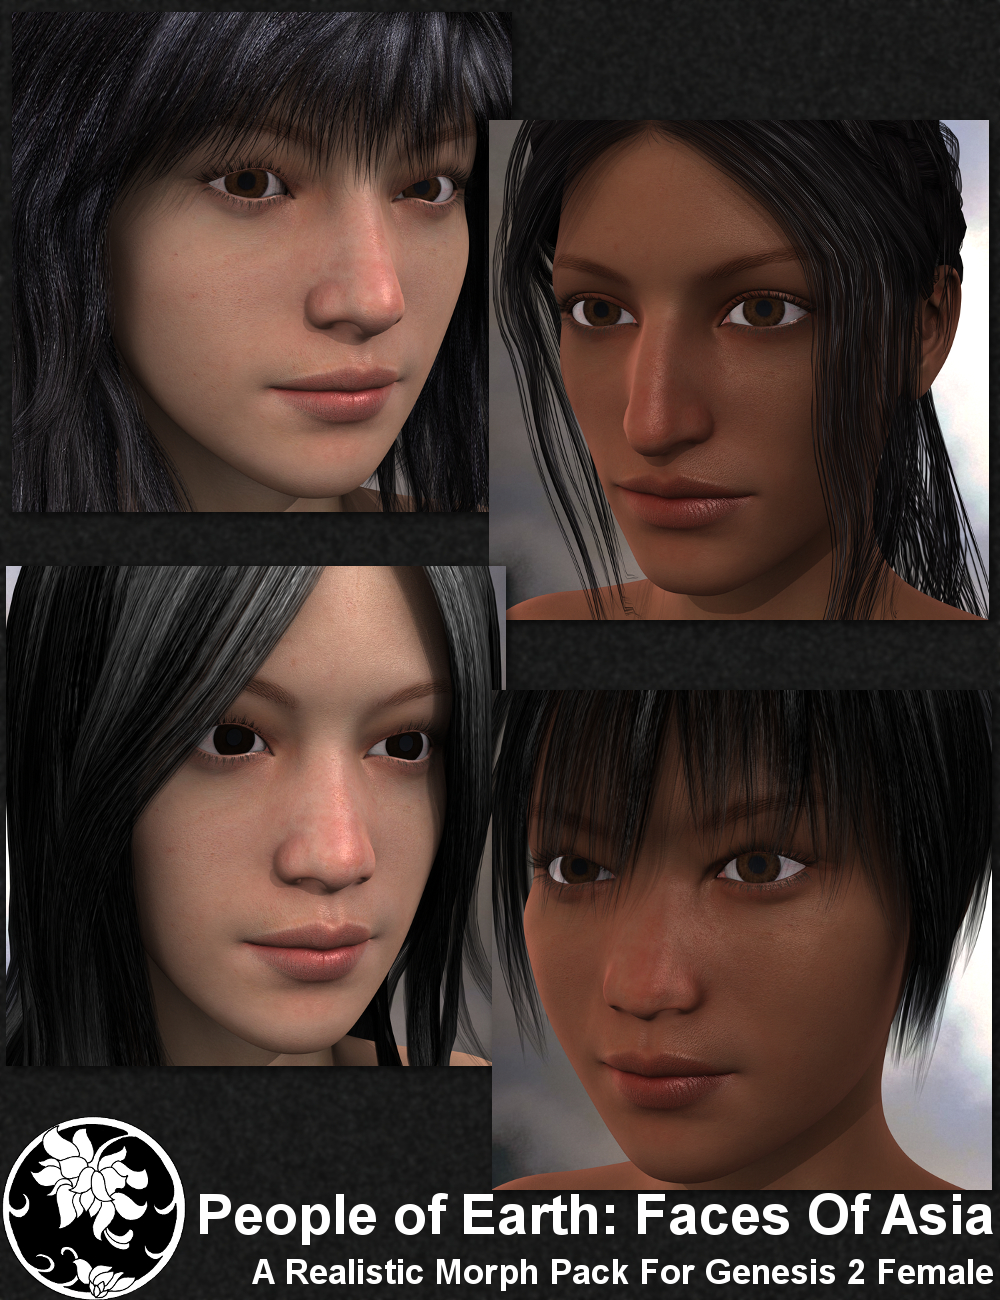 People of Earth: Faces of Asia by: Sickleyield, 3D Models by Daz 3D